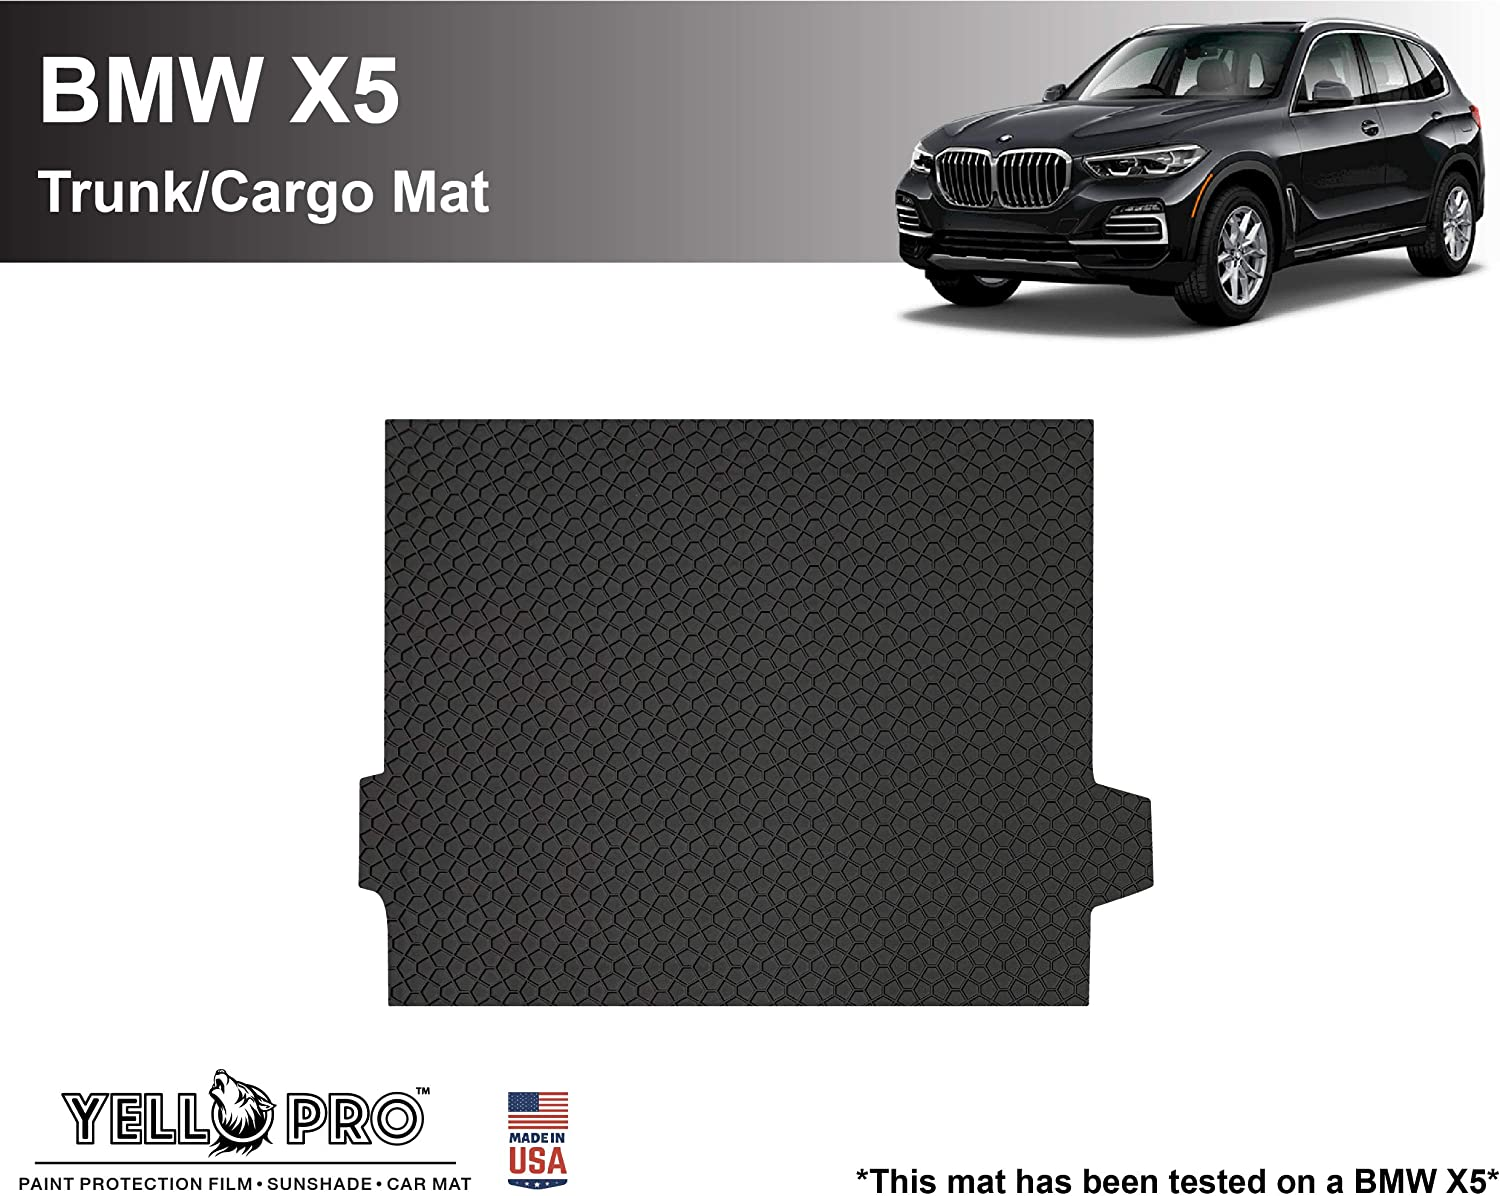 Floor Mat for BMW X5 SUV 3pcs YelloPro Custom fit Heavy Duty Front /& 2nd Row All Weather Anti-Slip Black Rubber Accessories 2019 2020 2021 Made in USA